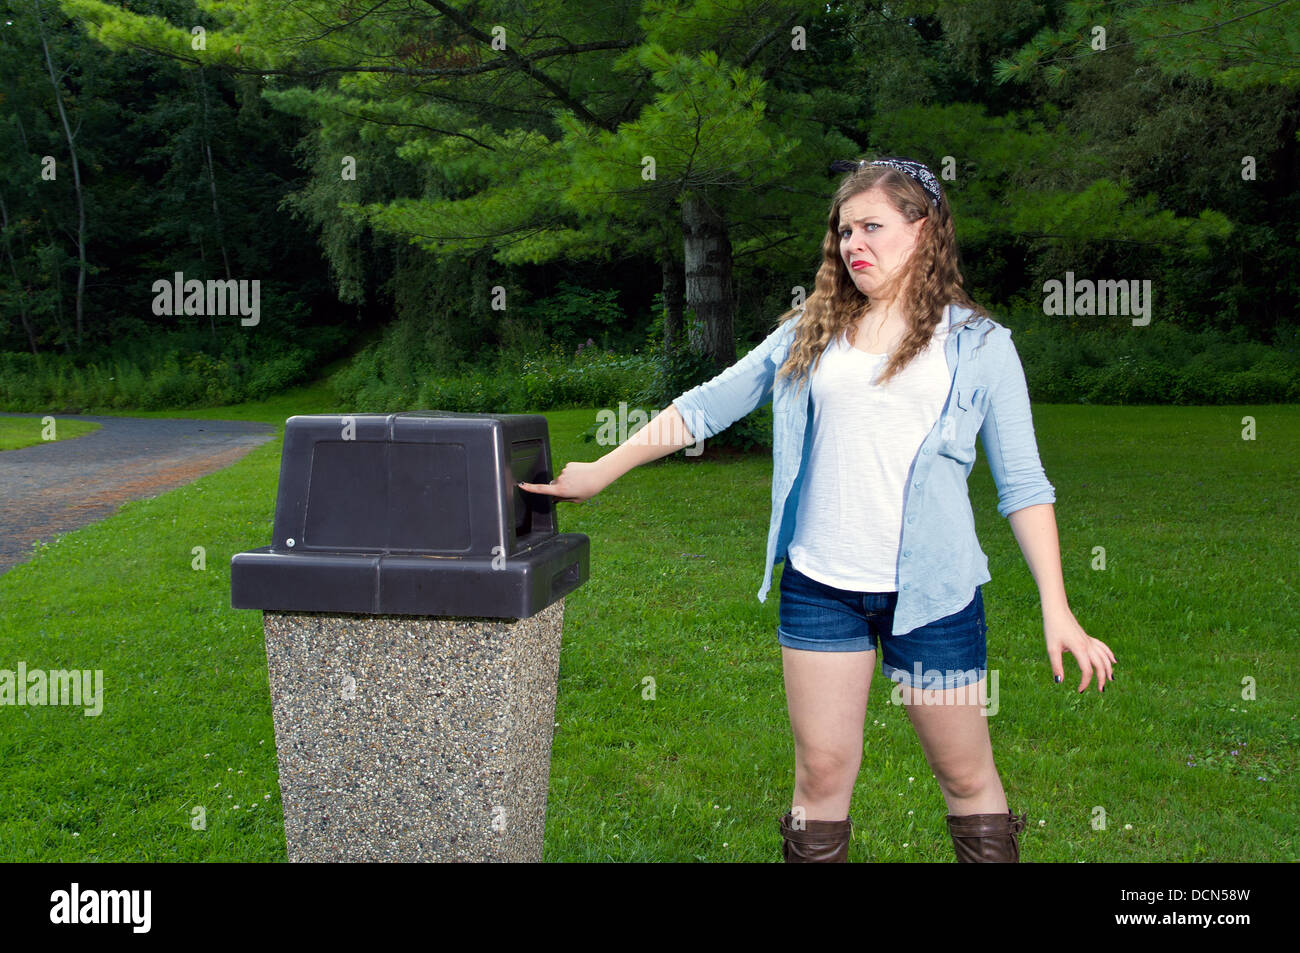 Teen Girl in a park looking in a trash can with a disgusting look on her face - Stock Image